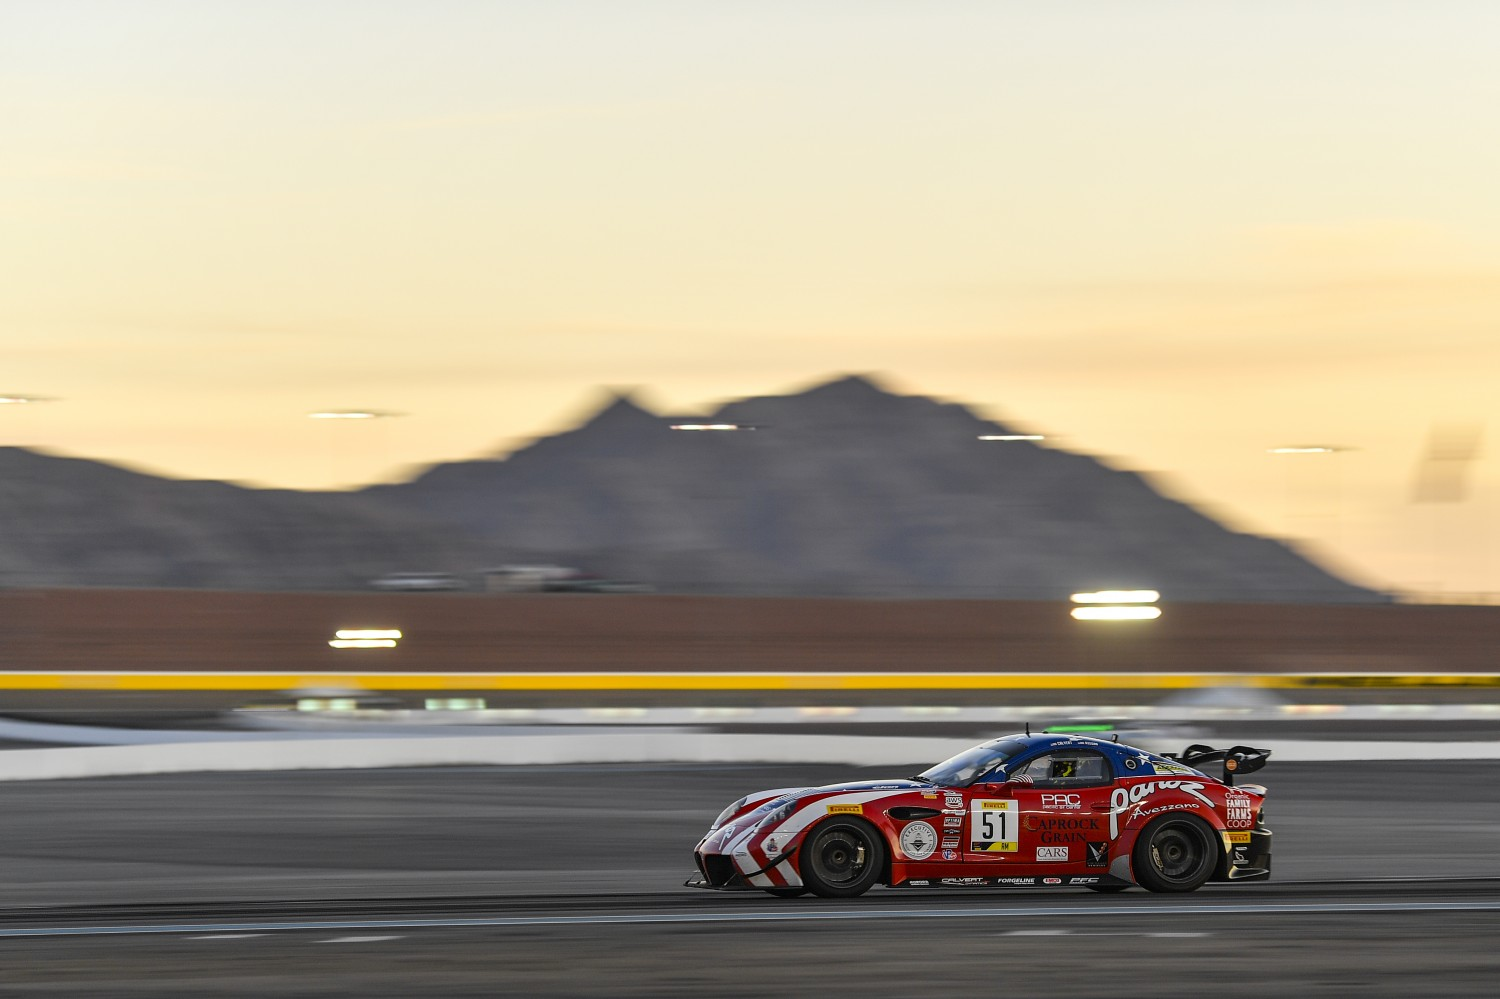 #51 Panoz Avezzano GT of Preston Calvert and Matthew Keegan with Team Panoz Racing  2019 Blancpain GT World Challenge America - Las Vegas, Las Vegas NV | Gavin Baker/SRO